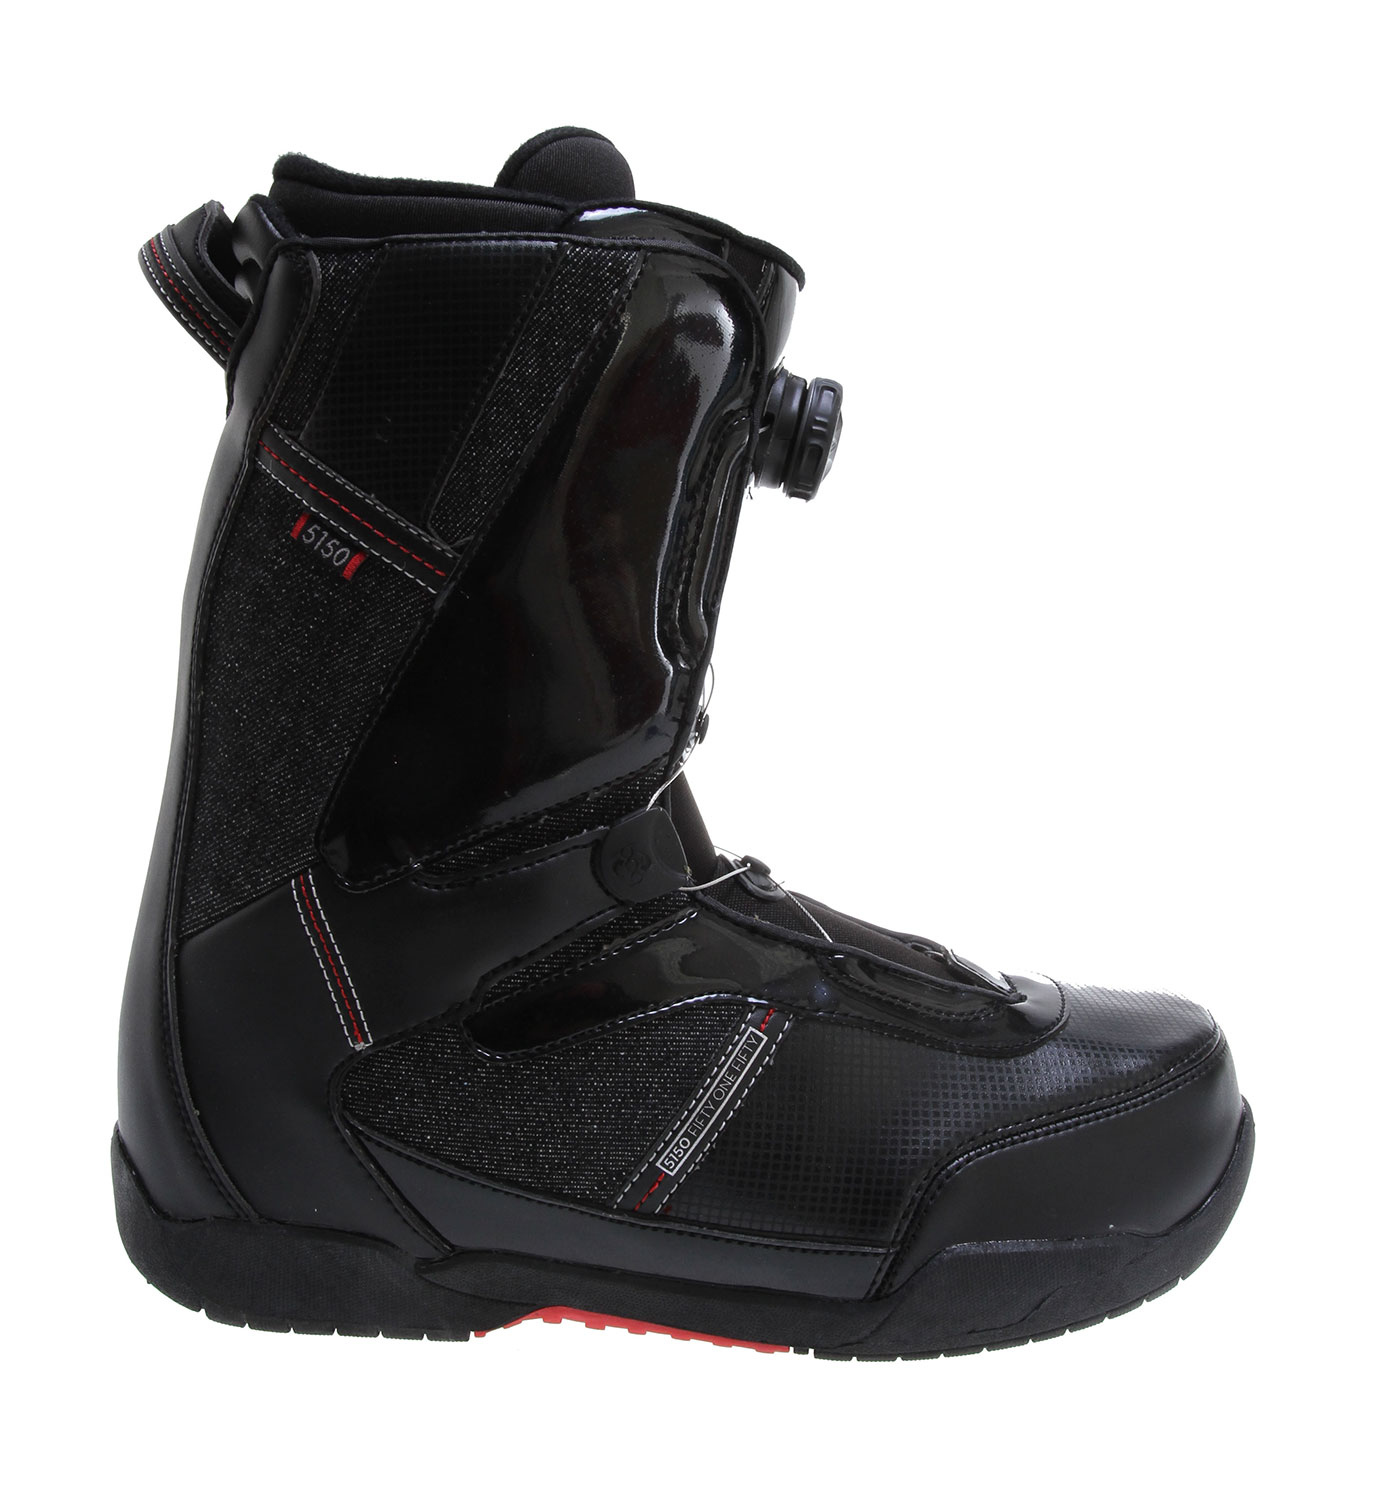 Snowboard The Legion's slim profile, high performance design comes complete with a PowerPlus thermo-formable EVA Liner, BOA lacing and lateral stiffening overlays, to ensure top performance and comfort in a stylish package.Key Features of the 5150 Legion Boa Snowboard Boots : BOA closure system provides ultimate fit and on-the-fly adjustment Path CTS Outsole with durable rubber for a grip that won't slip PowerPlus EVA Liner with Power-Lace closure, Lace Lock, Performance Ankle Pocket, Flex-Toe design and removable insole Durable body construction with lateral stiffening overlays Multi-Zone ankle flex points - $125.95